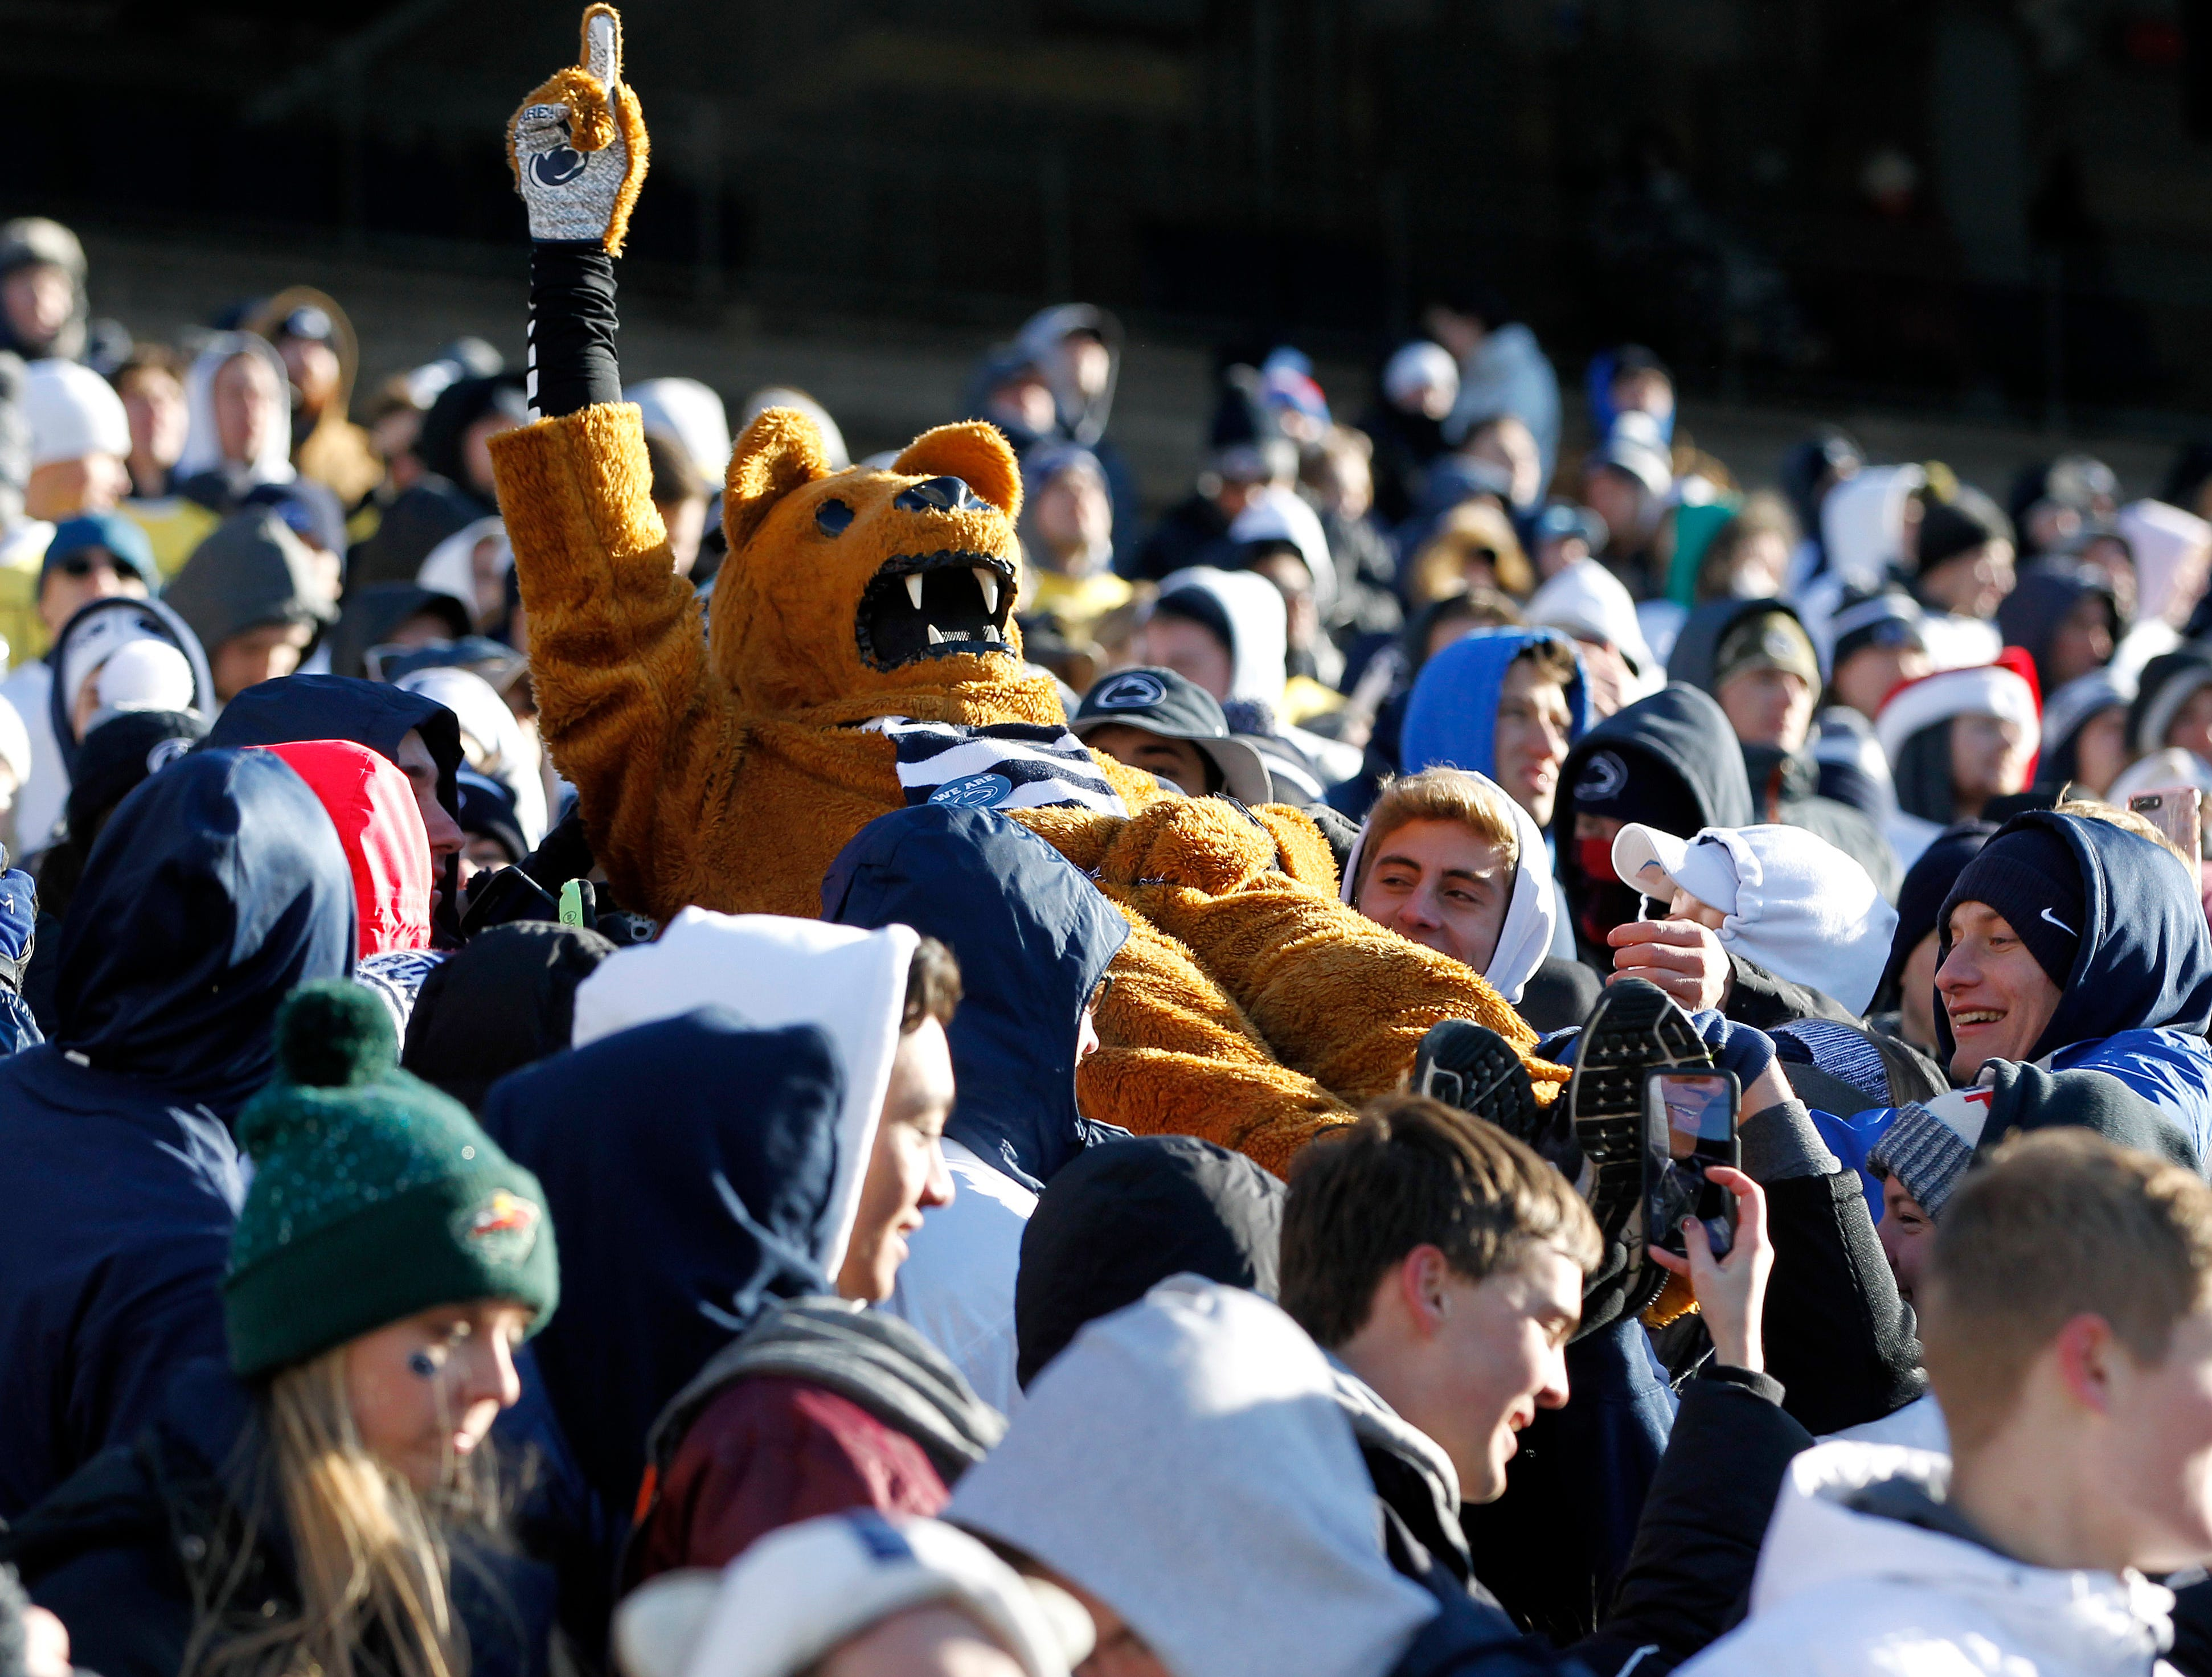 Penn State's Nittany Lion mascot is lifted up by the student section after a field goal against Wisconsin during the second half of an NCAA college football game in State College, Pa., Saturday, Nov. 10, 2018. Penn State won 22-10.